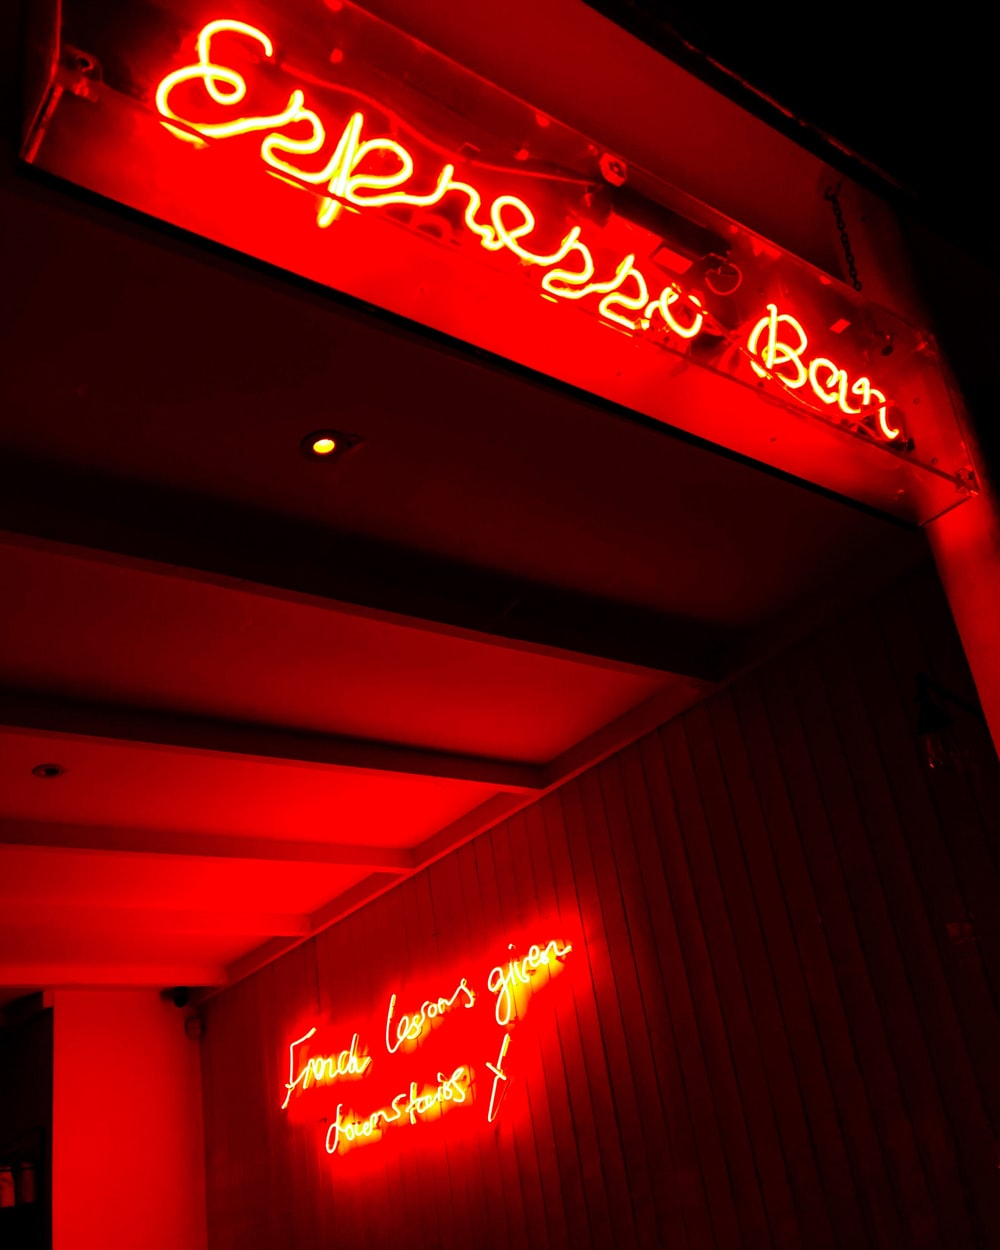 red and white coca cola neon light signage